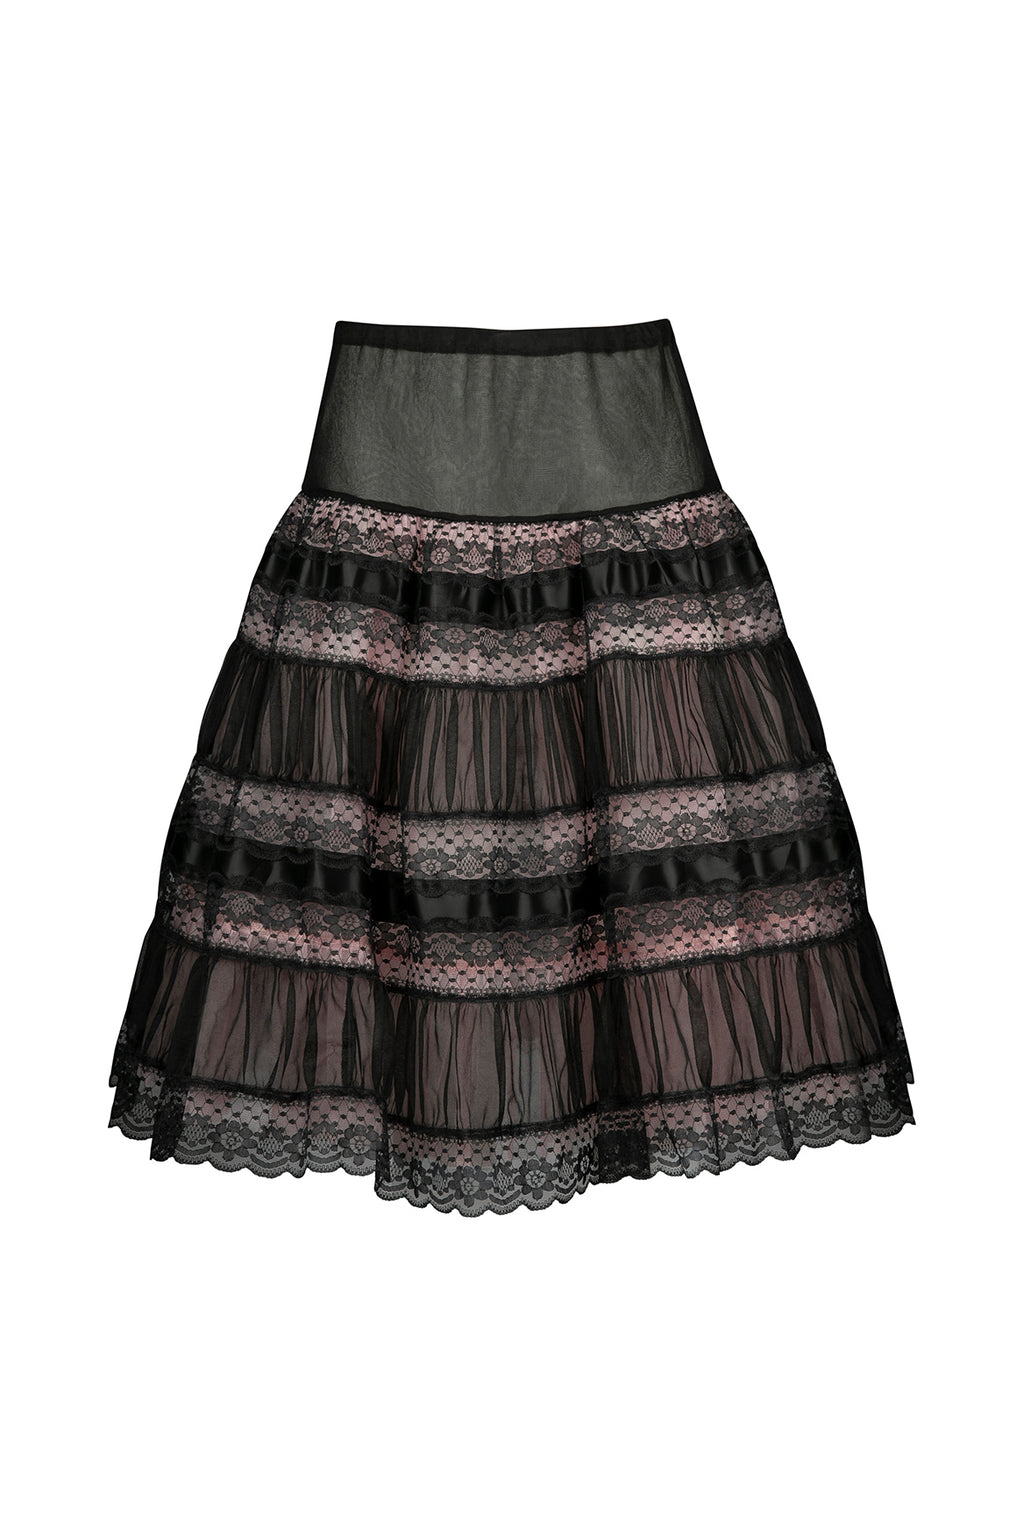 Vintage Lace Skirt with Silk Underlining